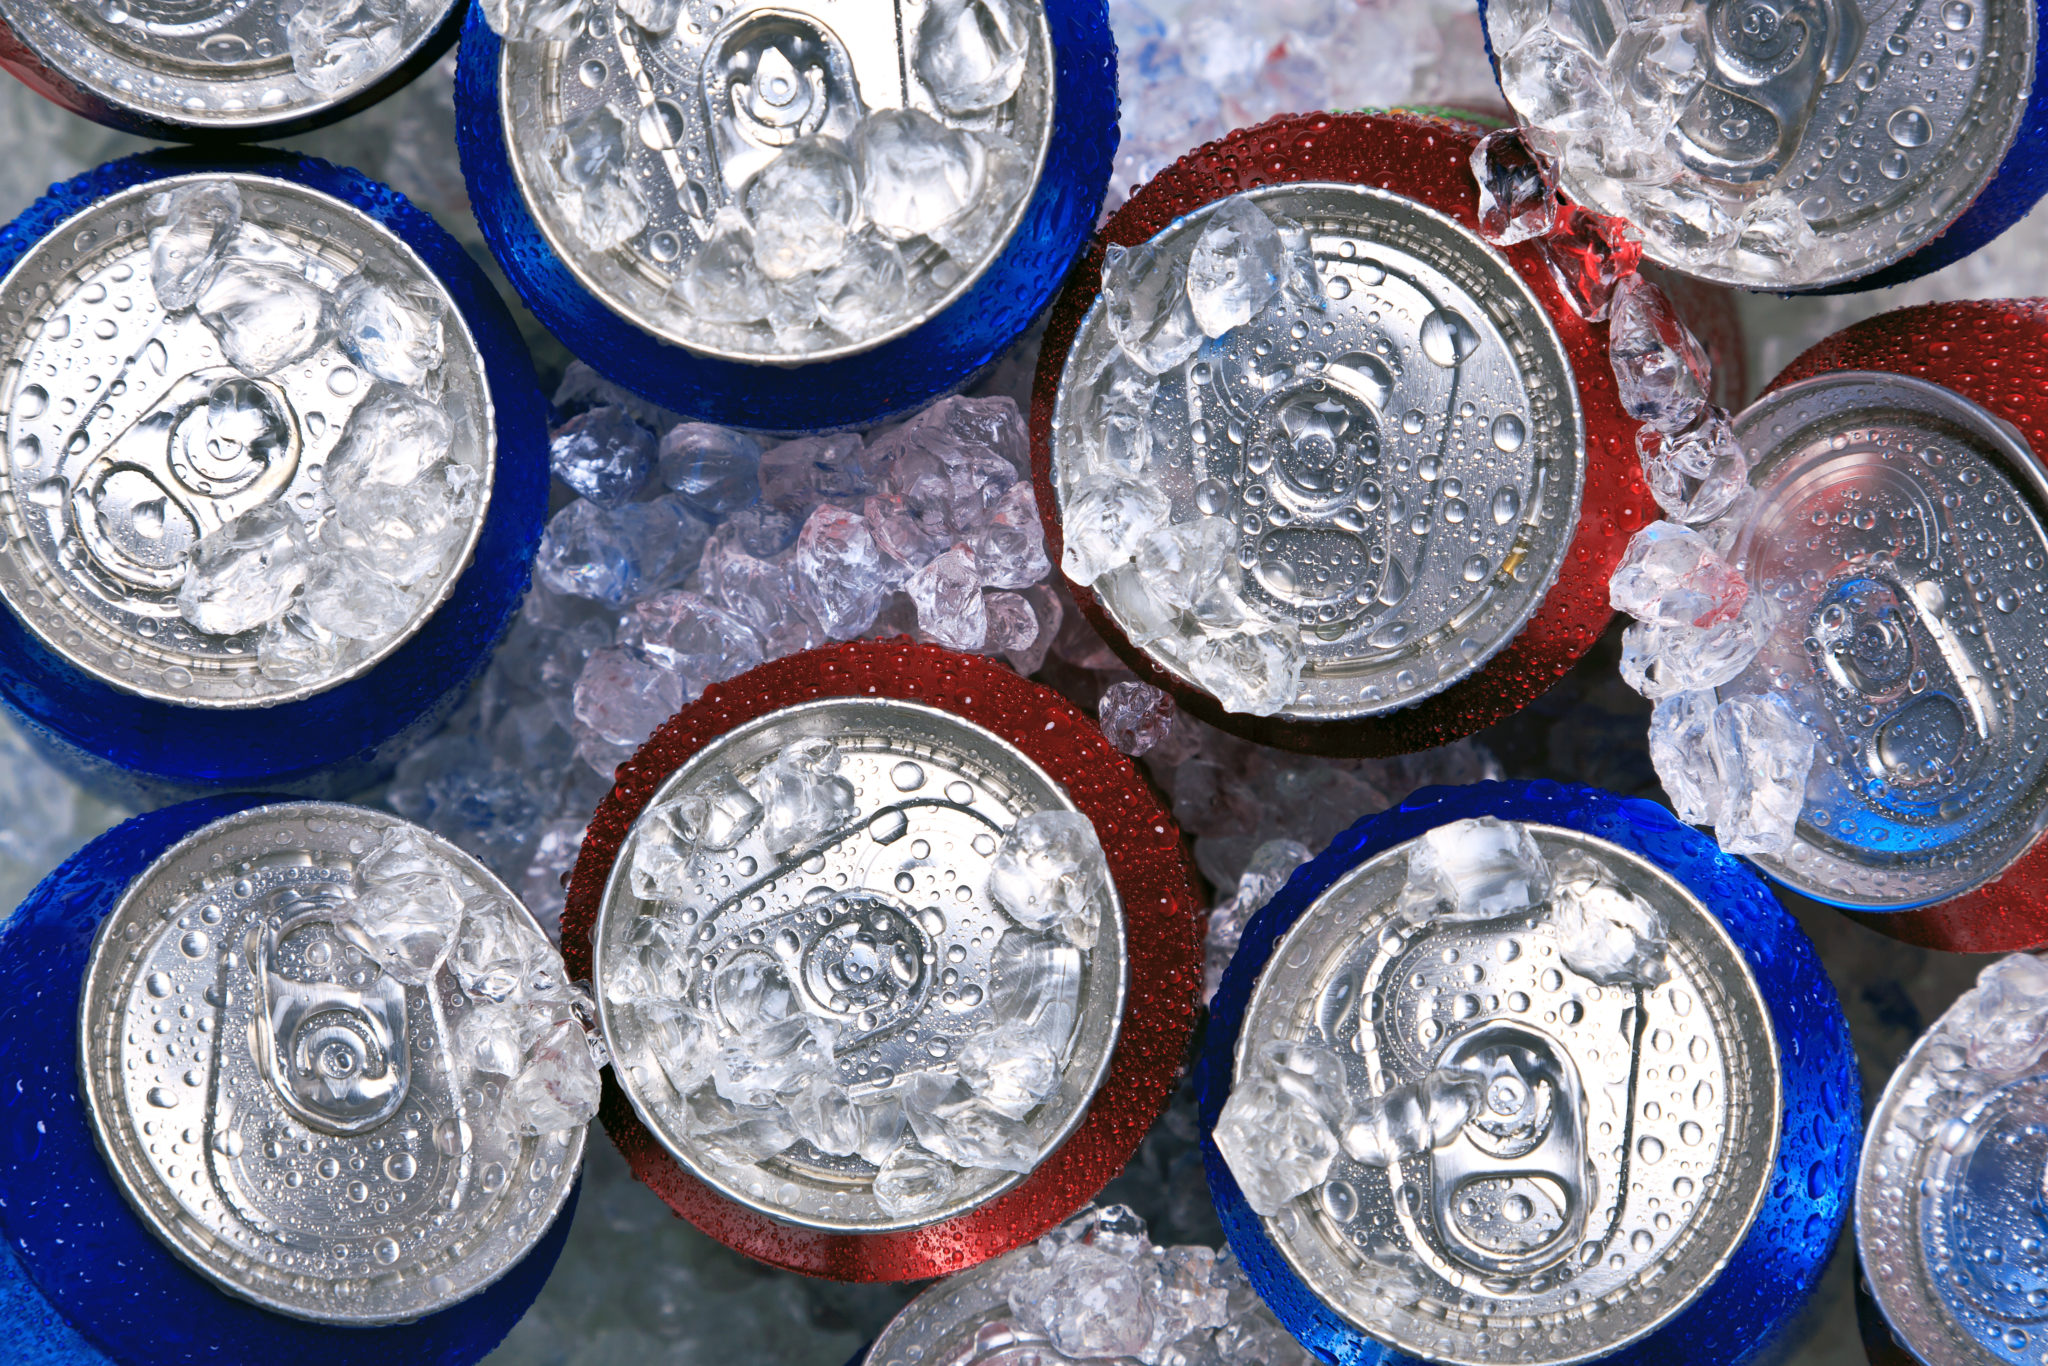 American Beverage Association v. City and County of SF